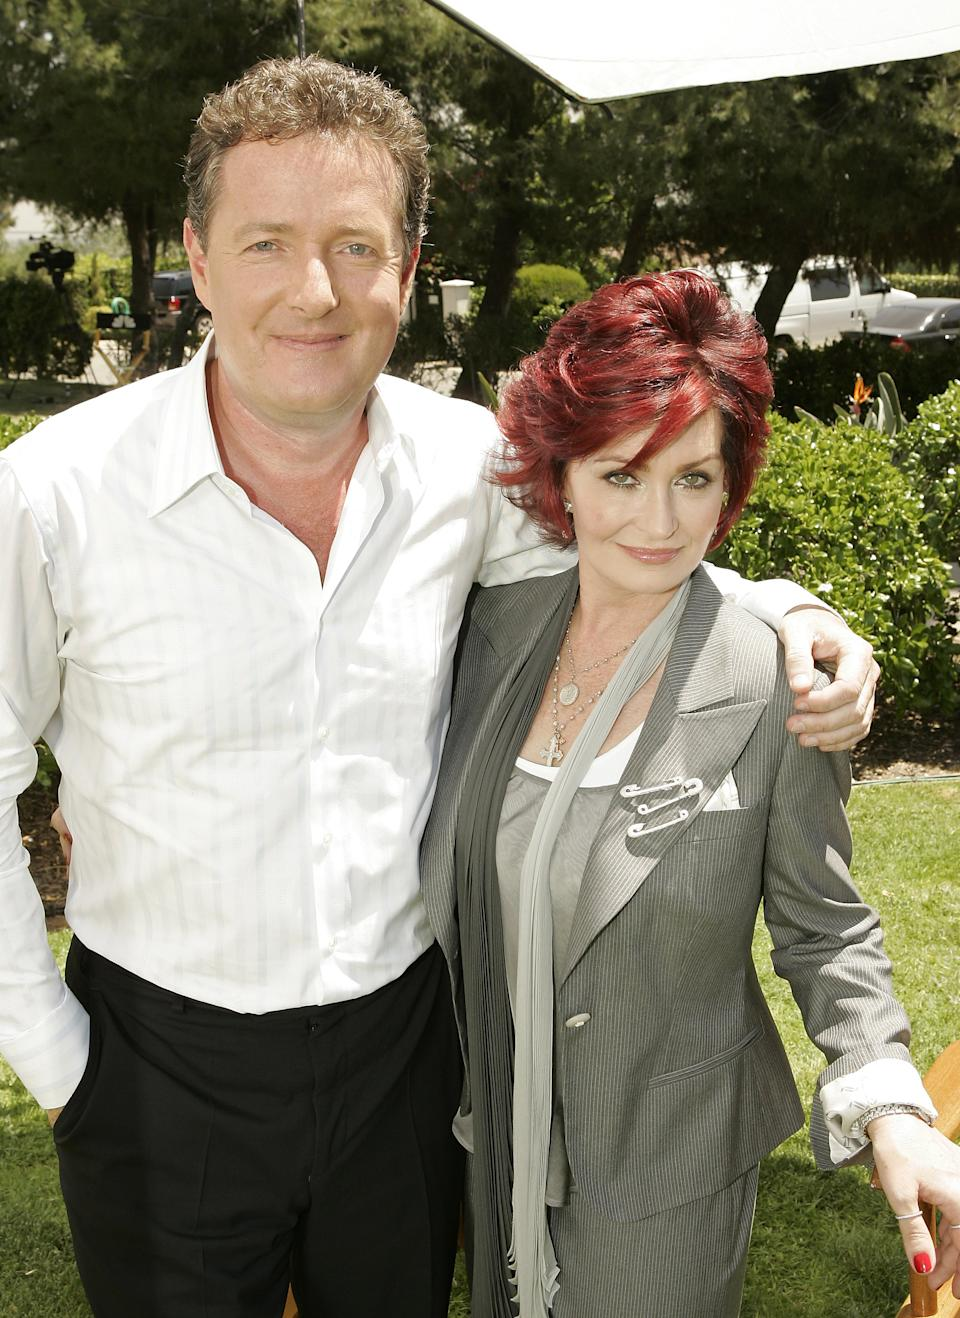 NBC UNIVERSAL 2007 SUMMER PRESS DAY -- NBC Entertainment -- Pictured: (l-r) Sharon Osbourne and Piers Morgan on April 27, 2007 -- Photo by: Chris Haston/NBCU Photo Bank